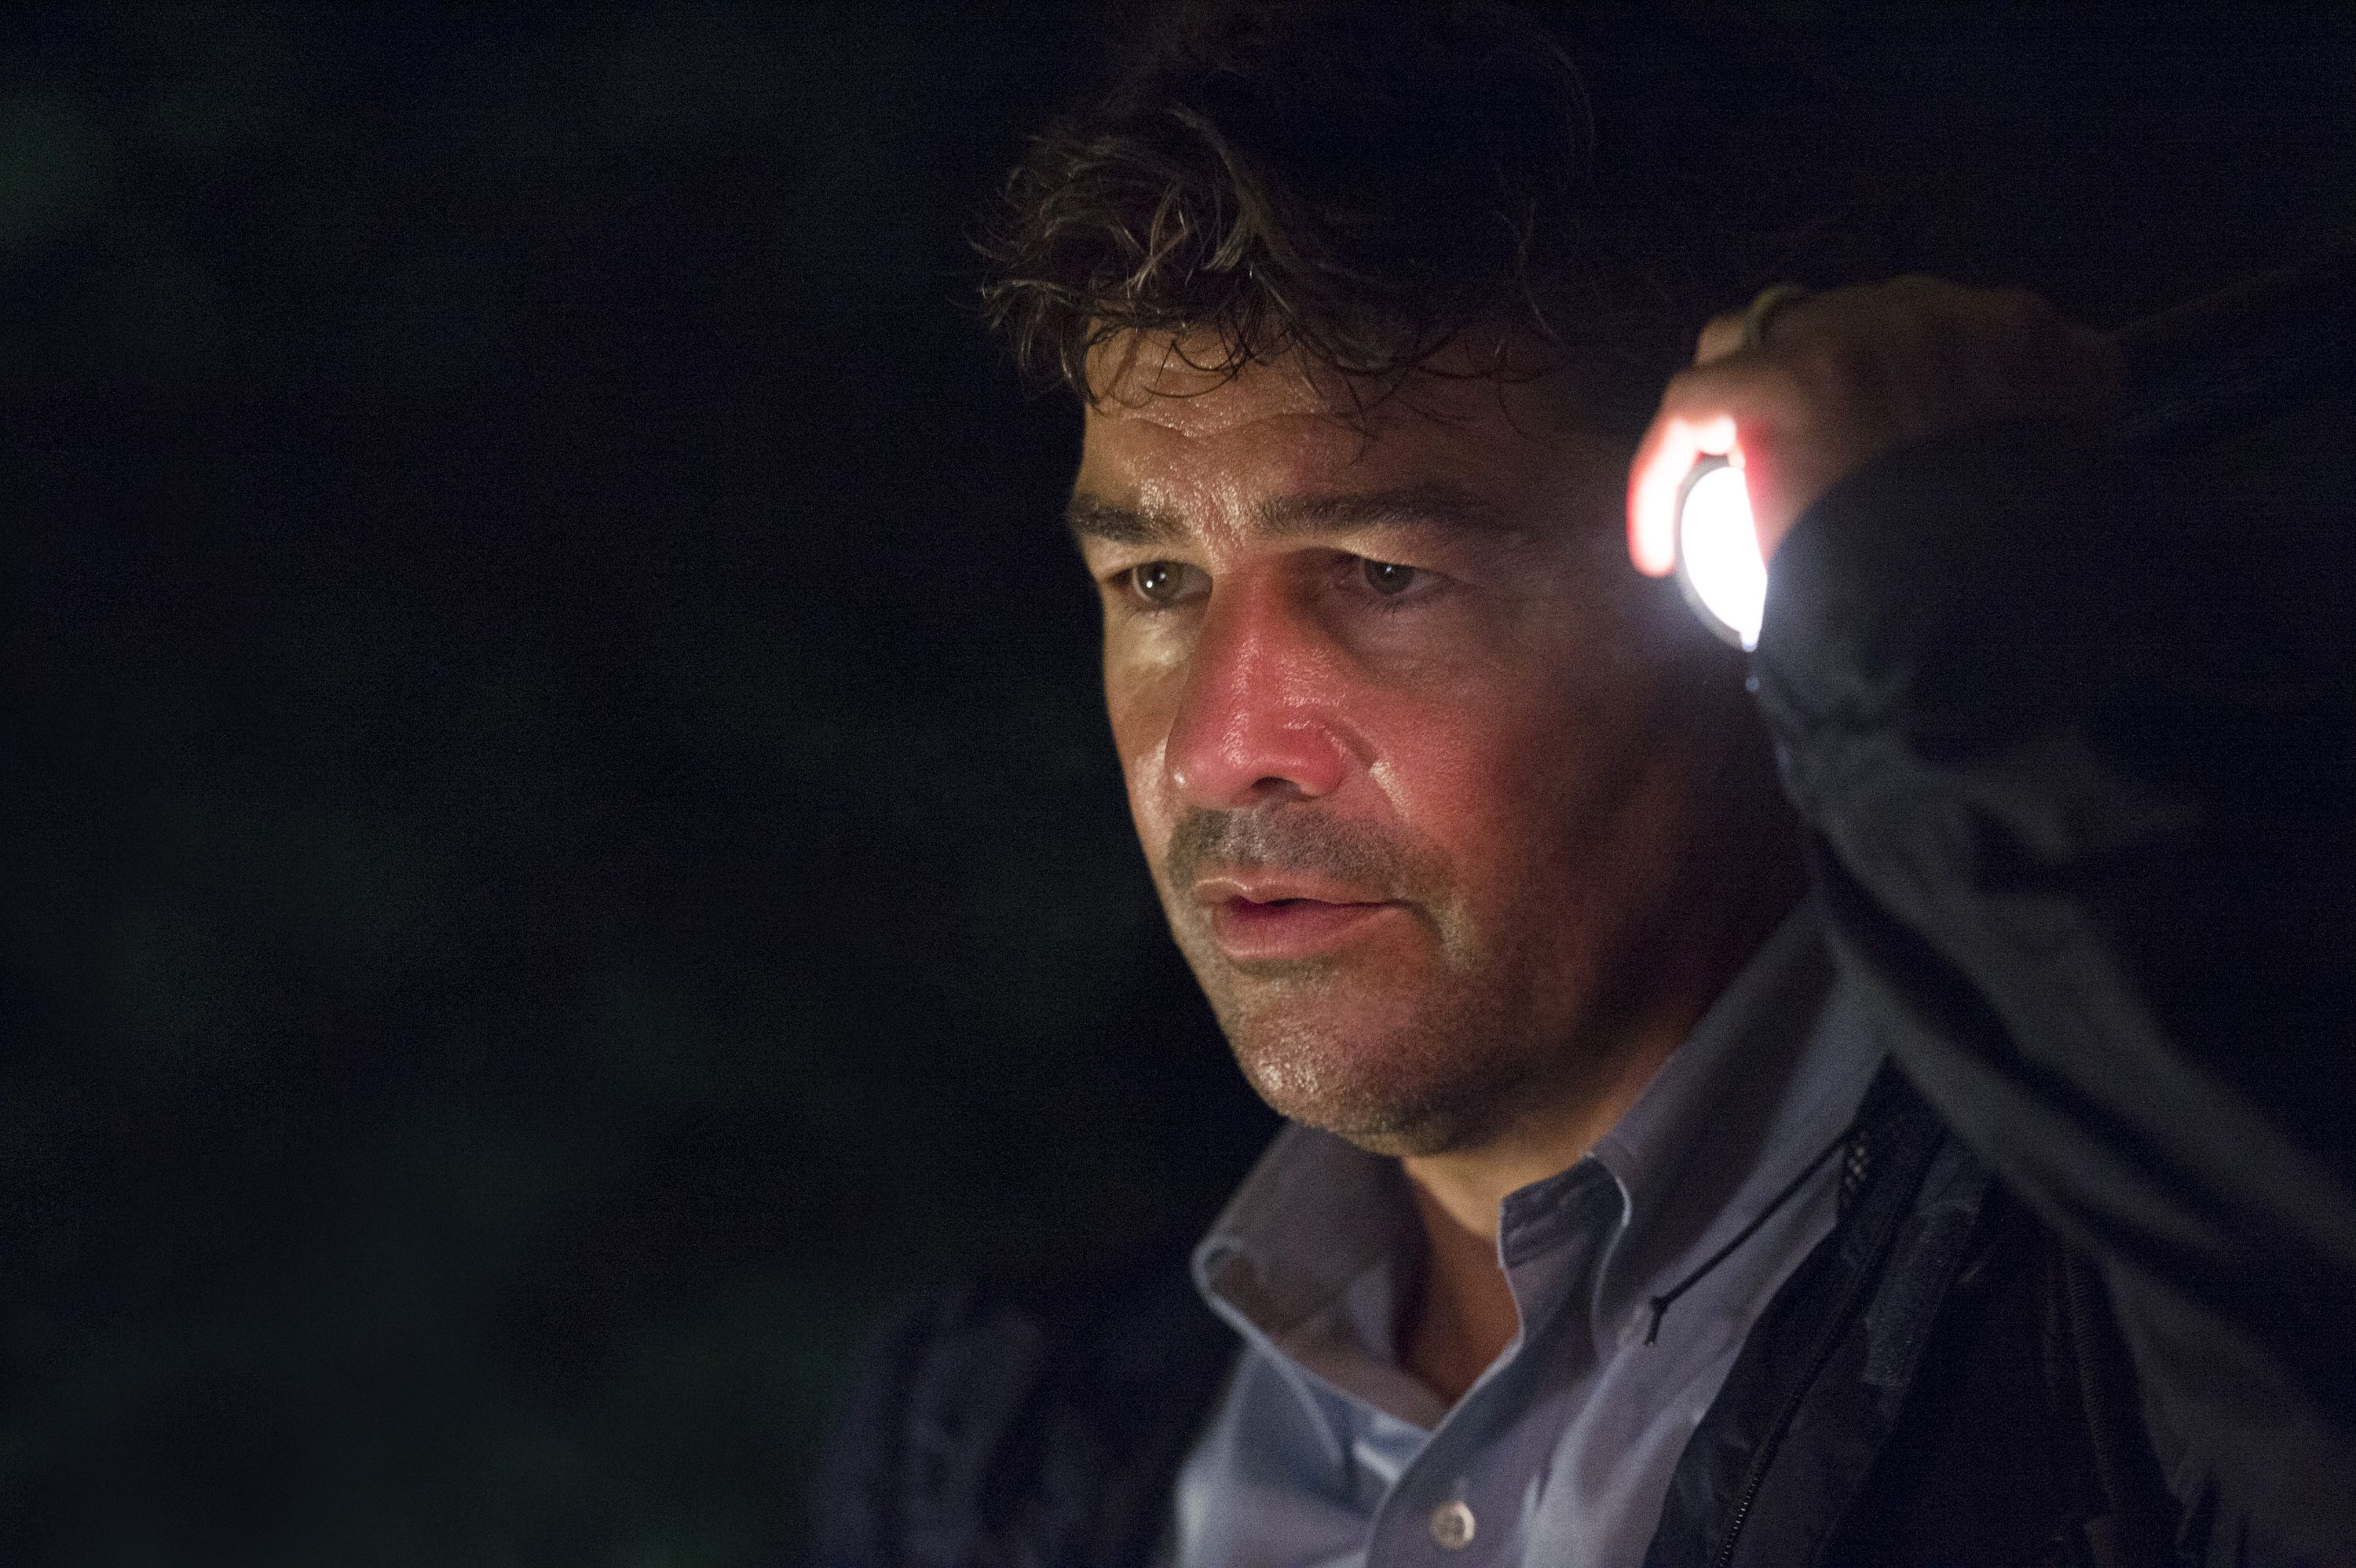 Netflix's Bloodline ends in season 3 as it lived — slow